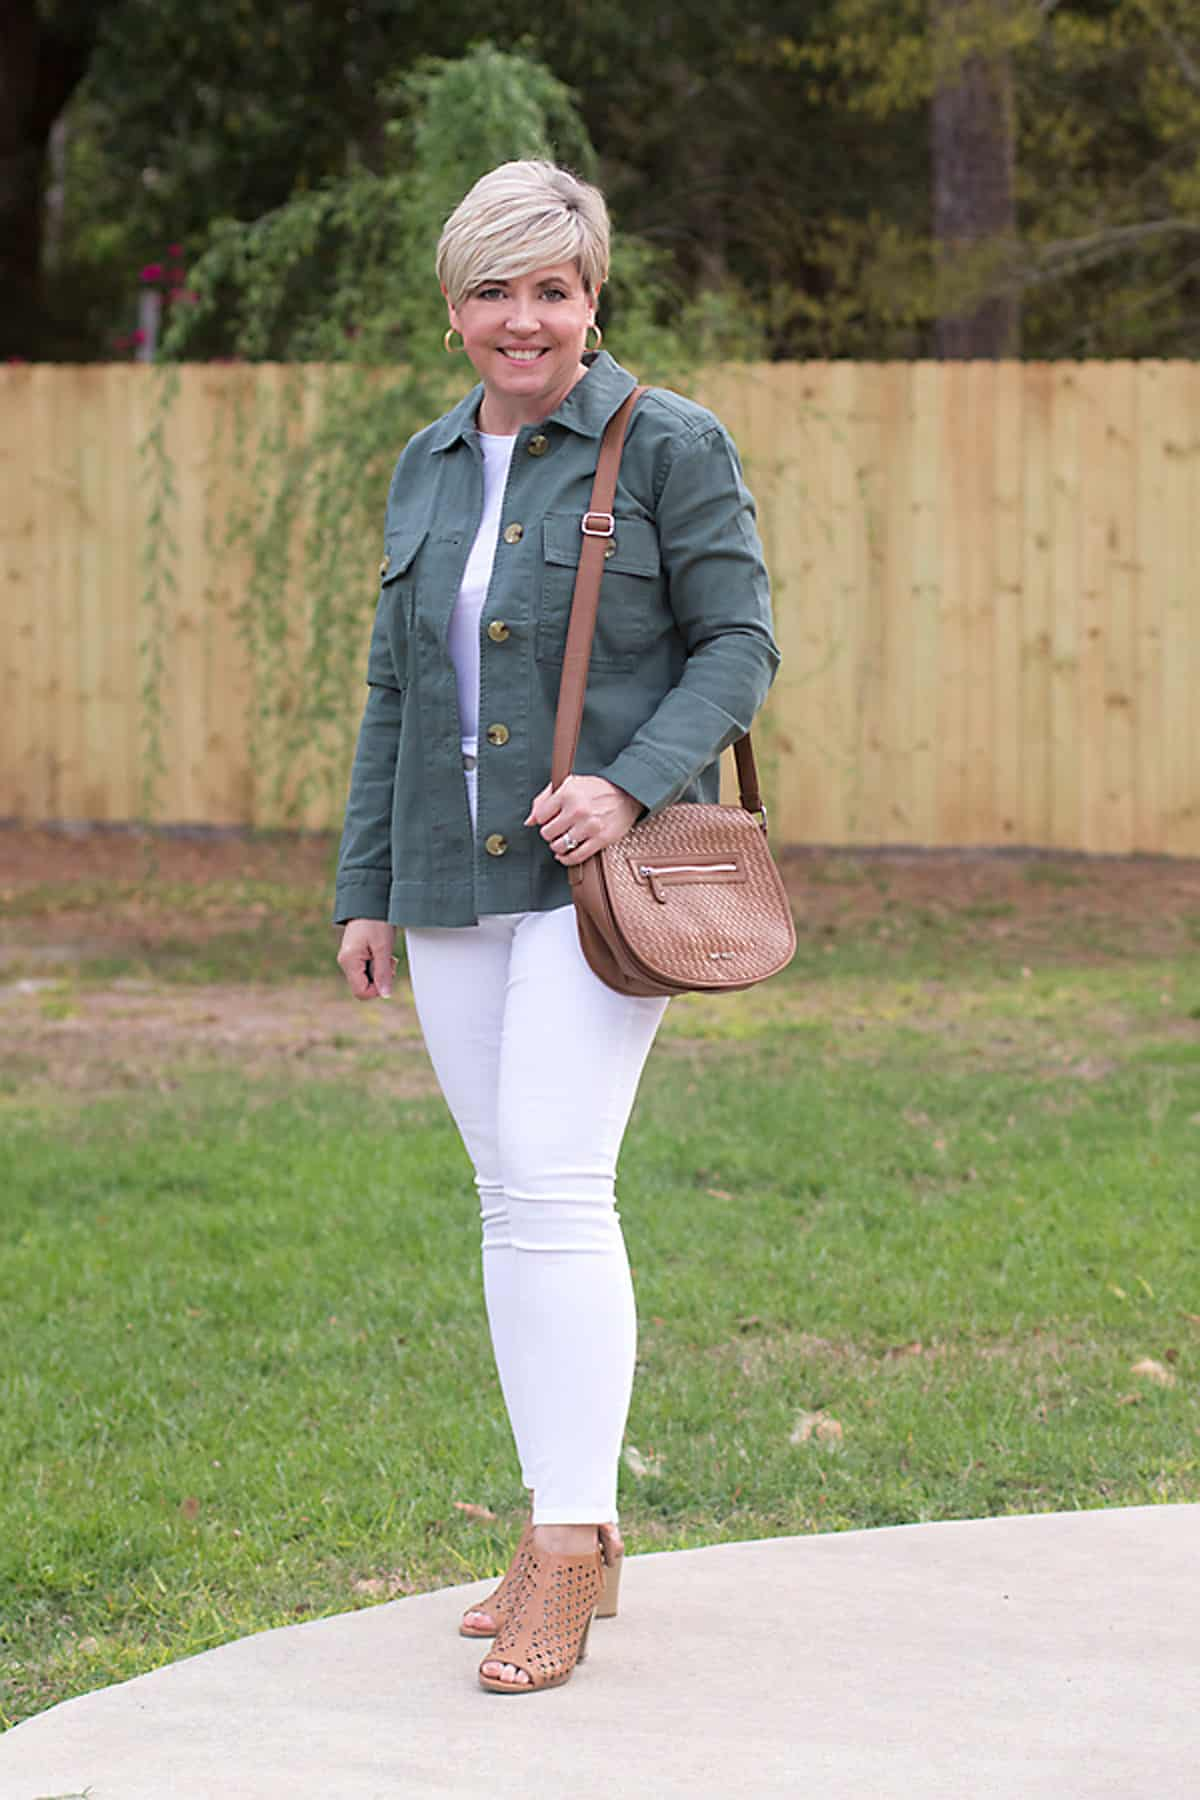 olive shirt jacket with white jeans outfit